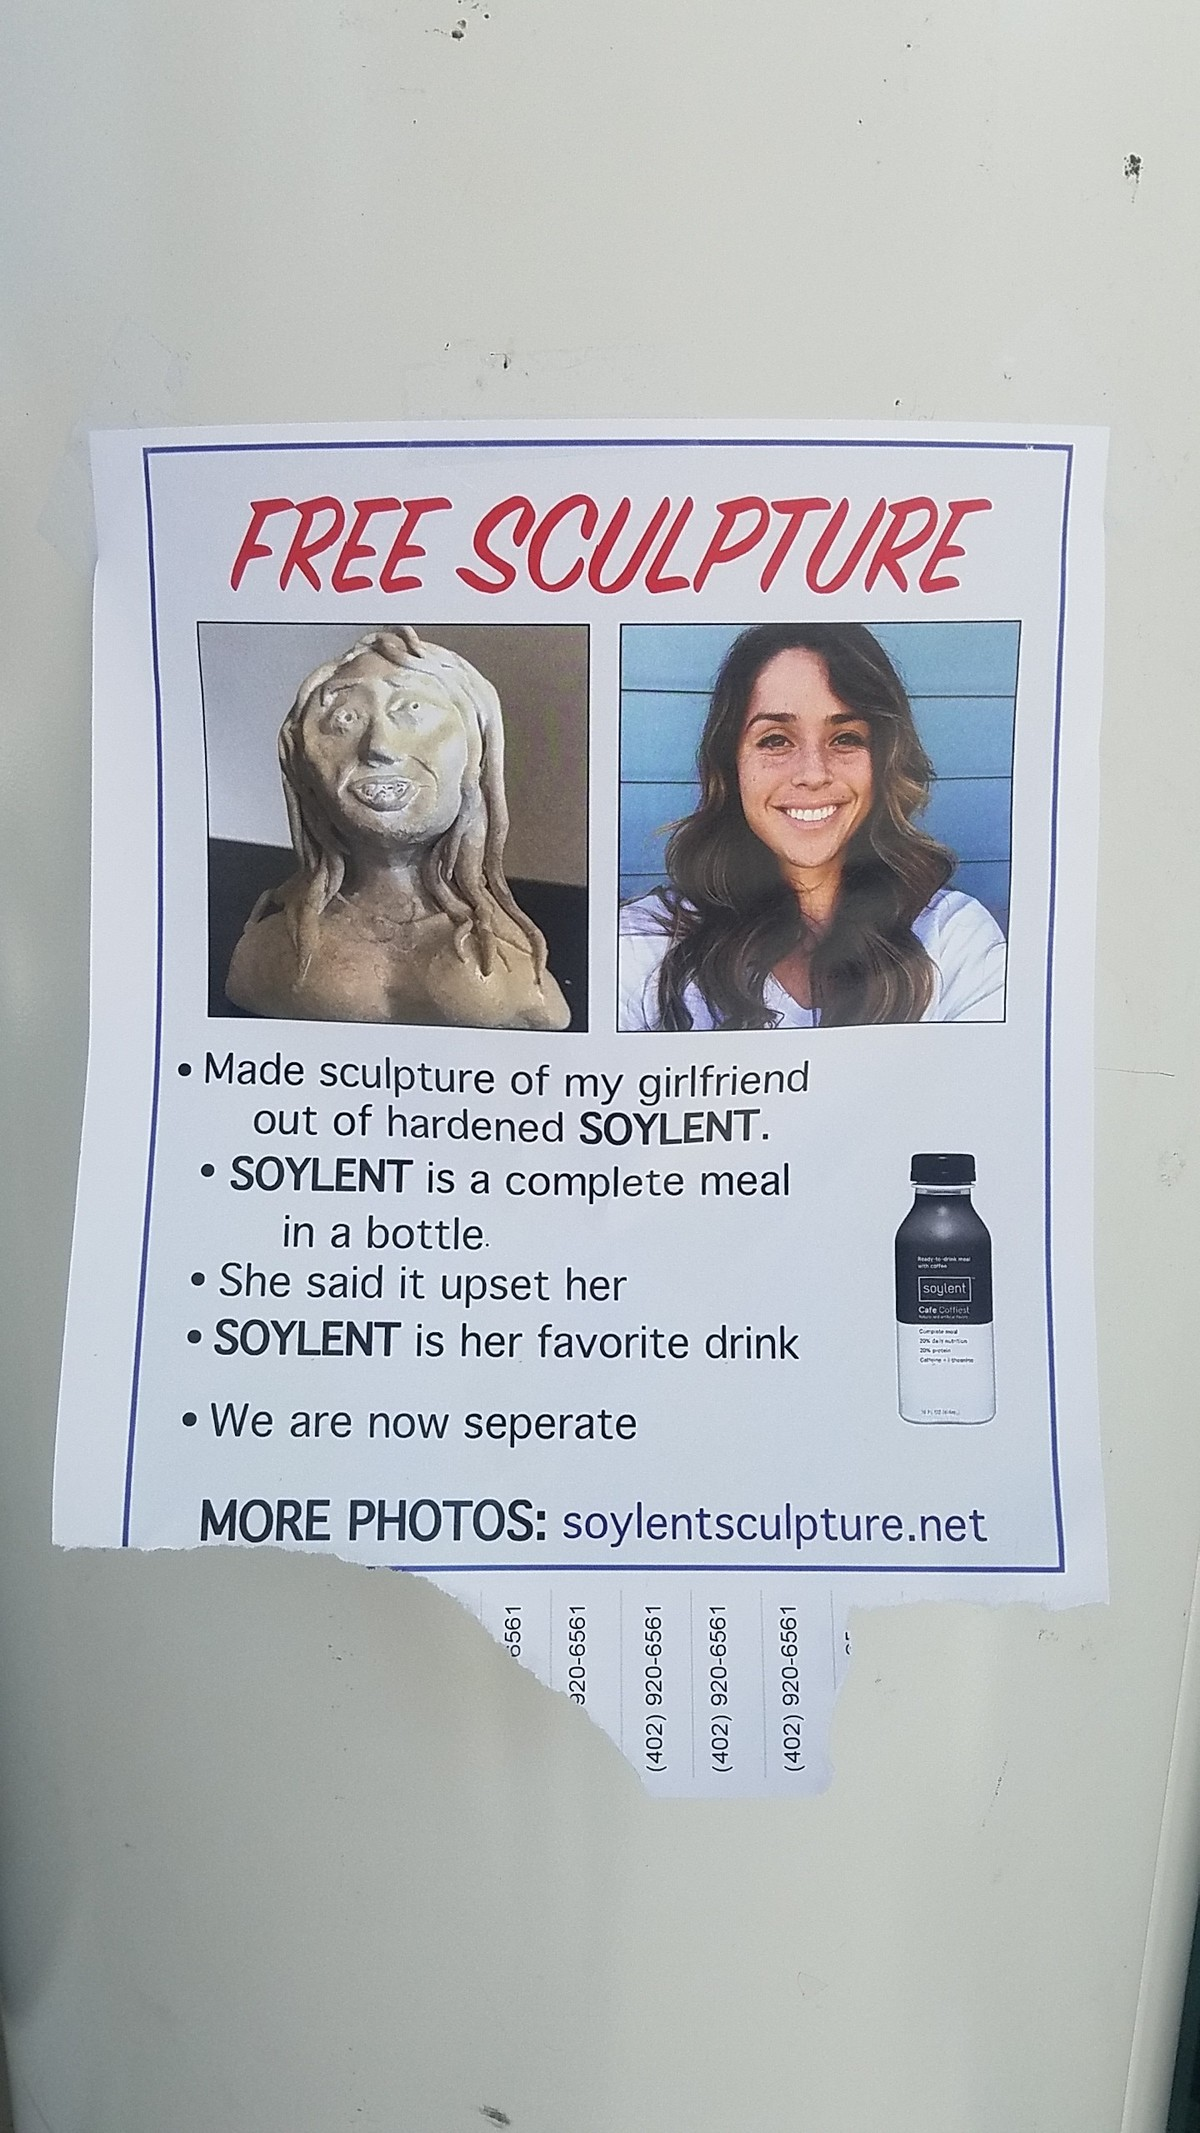 Poor Soyboy. Saw this on my way back to my dorm room about a week ago. It's pretty fake, but I appreciate dedication to a good joke. The guy also made a website